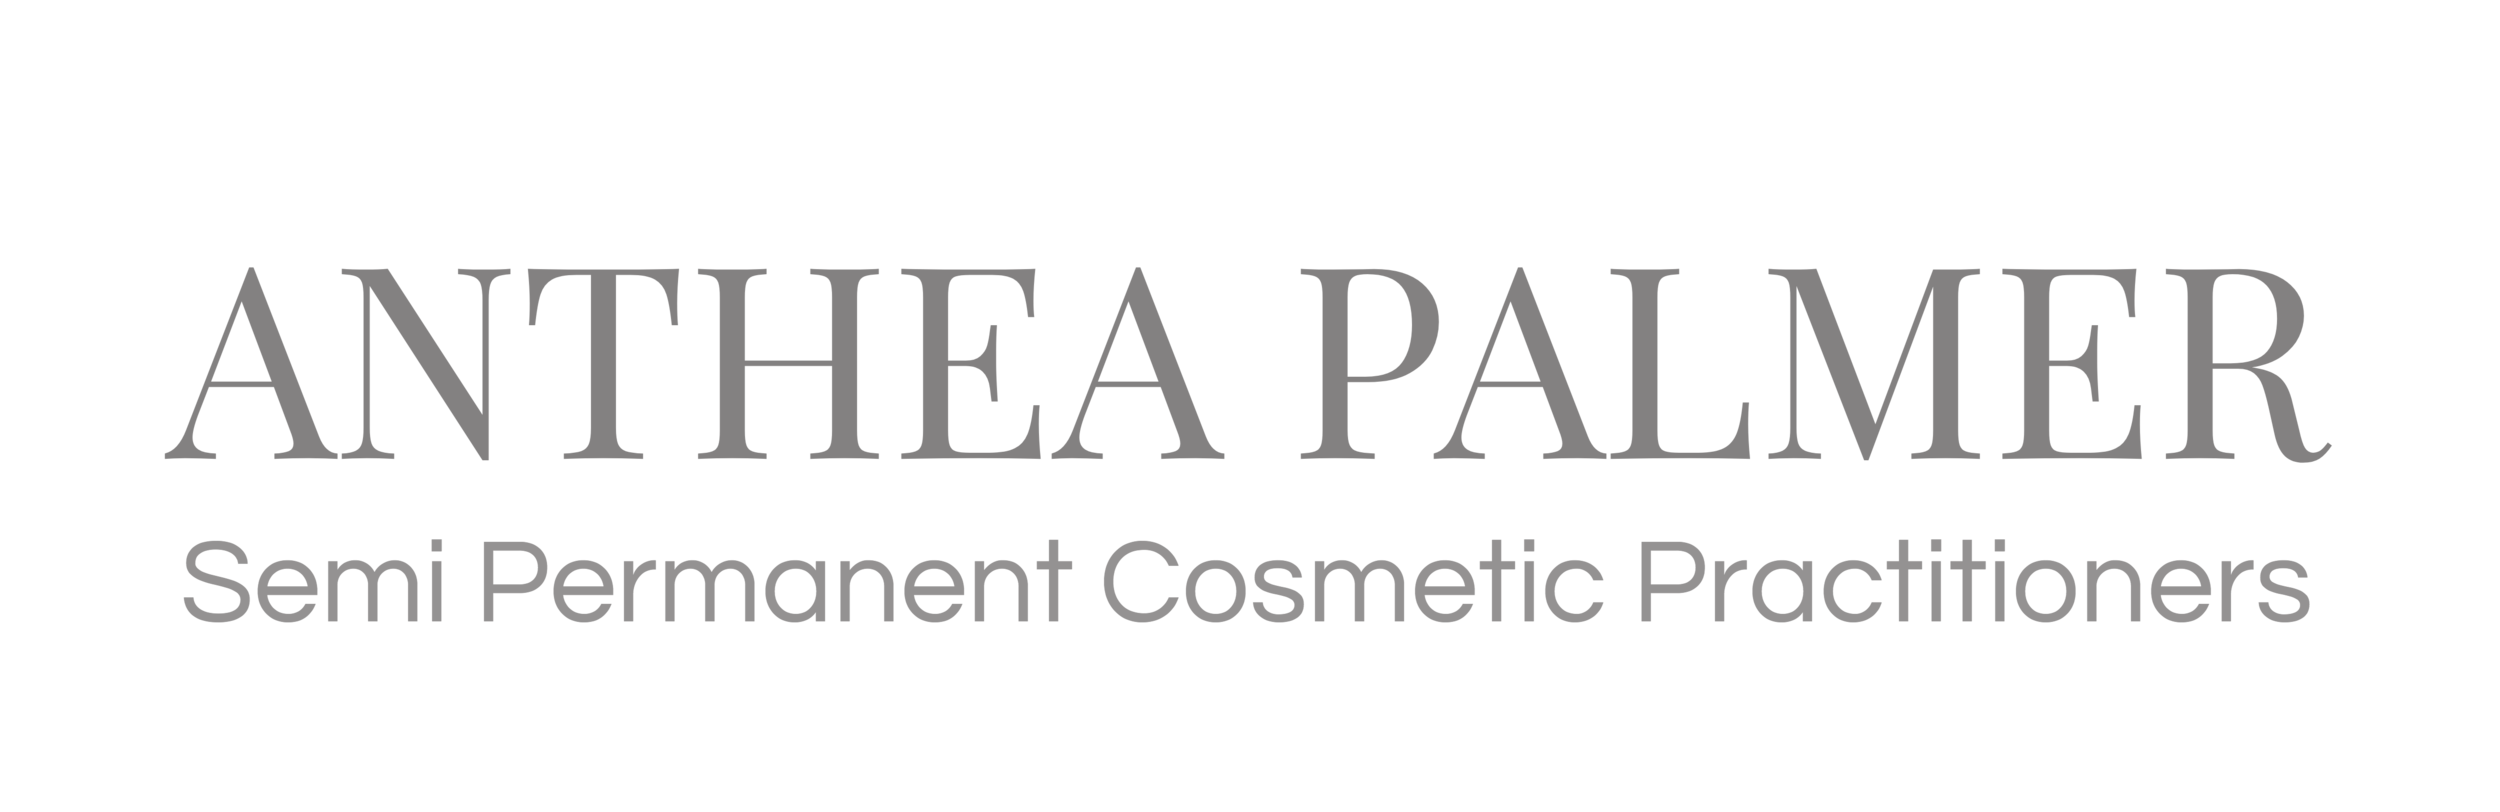 ANTHEA PALMER | Semi Permanent Cosmetic Practitioners